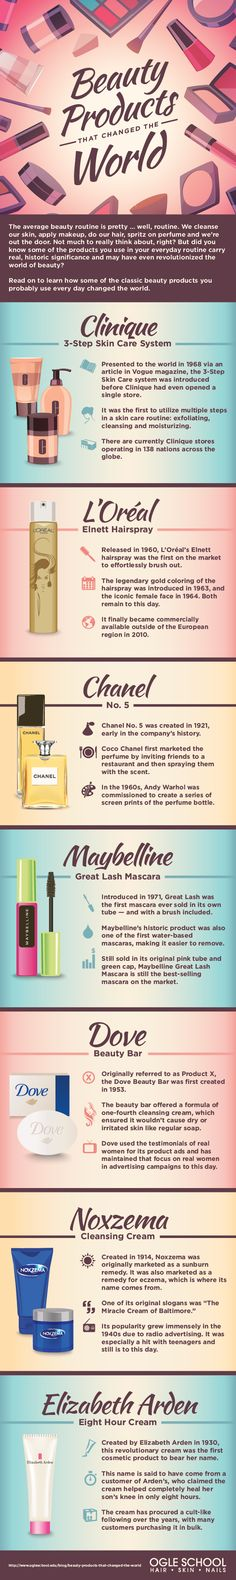 Beauty Products That Changed The World #infographic #Beauty #Health #BeautyProducts